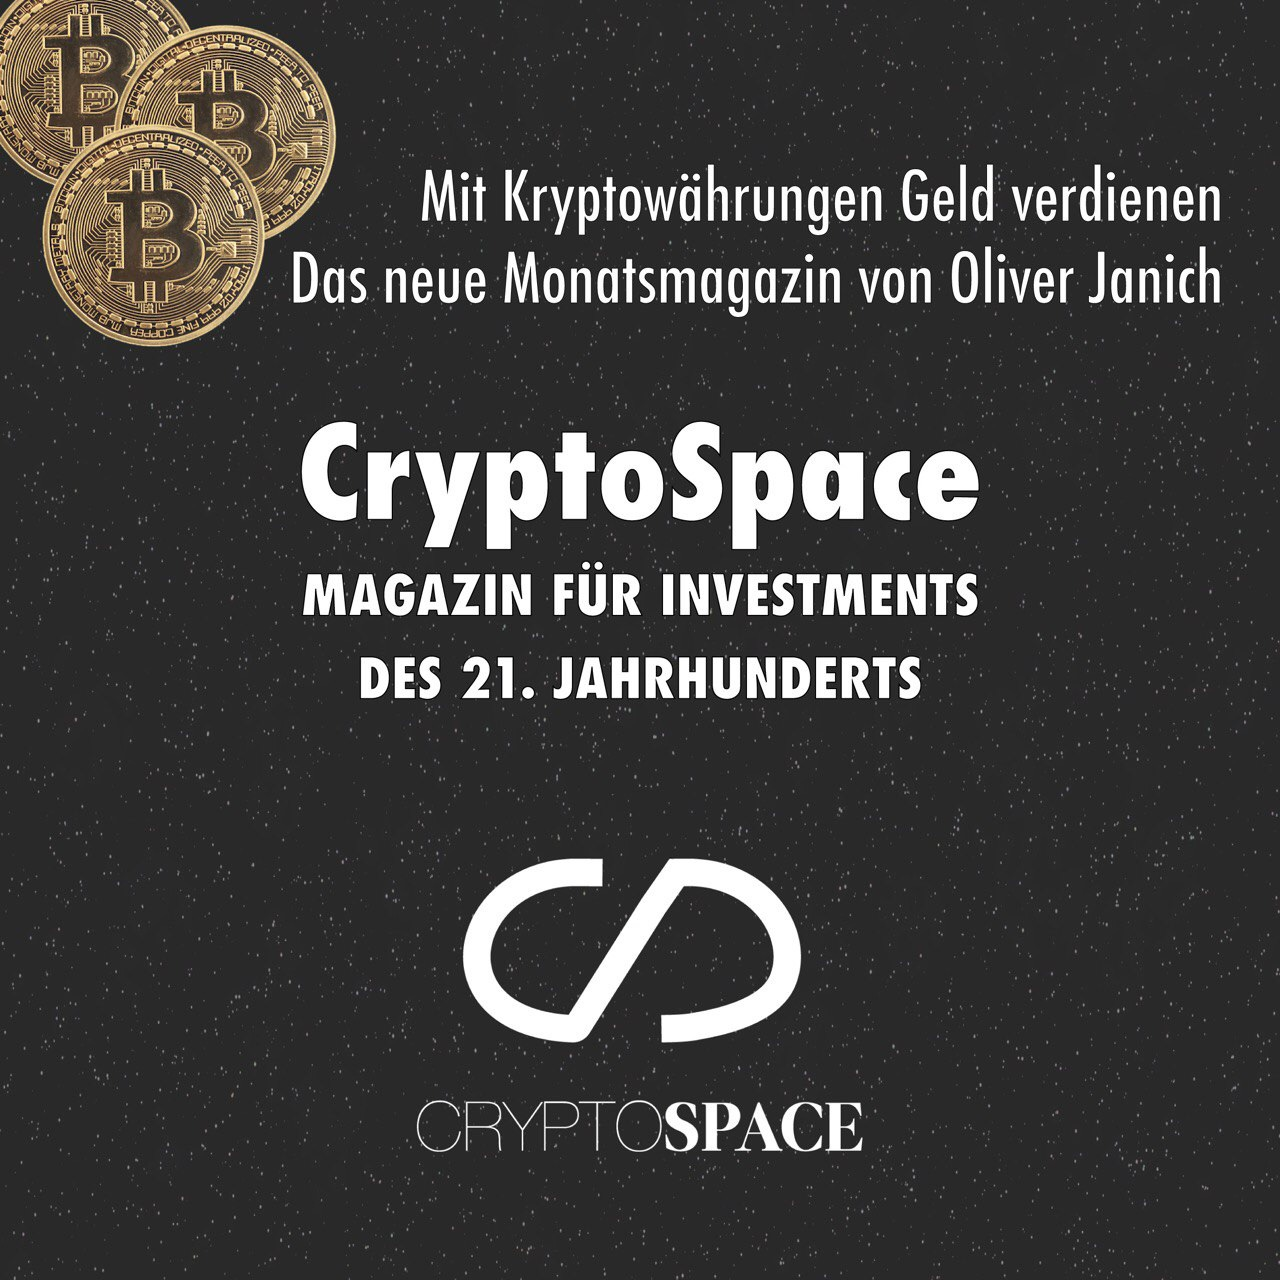 https://cryptospace.ll.land?ref=48072